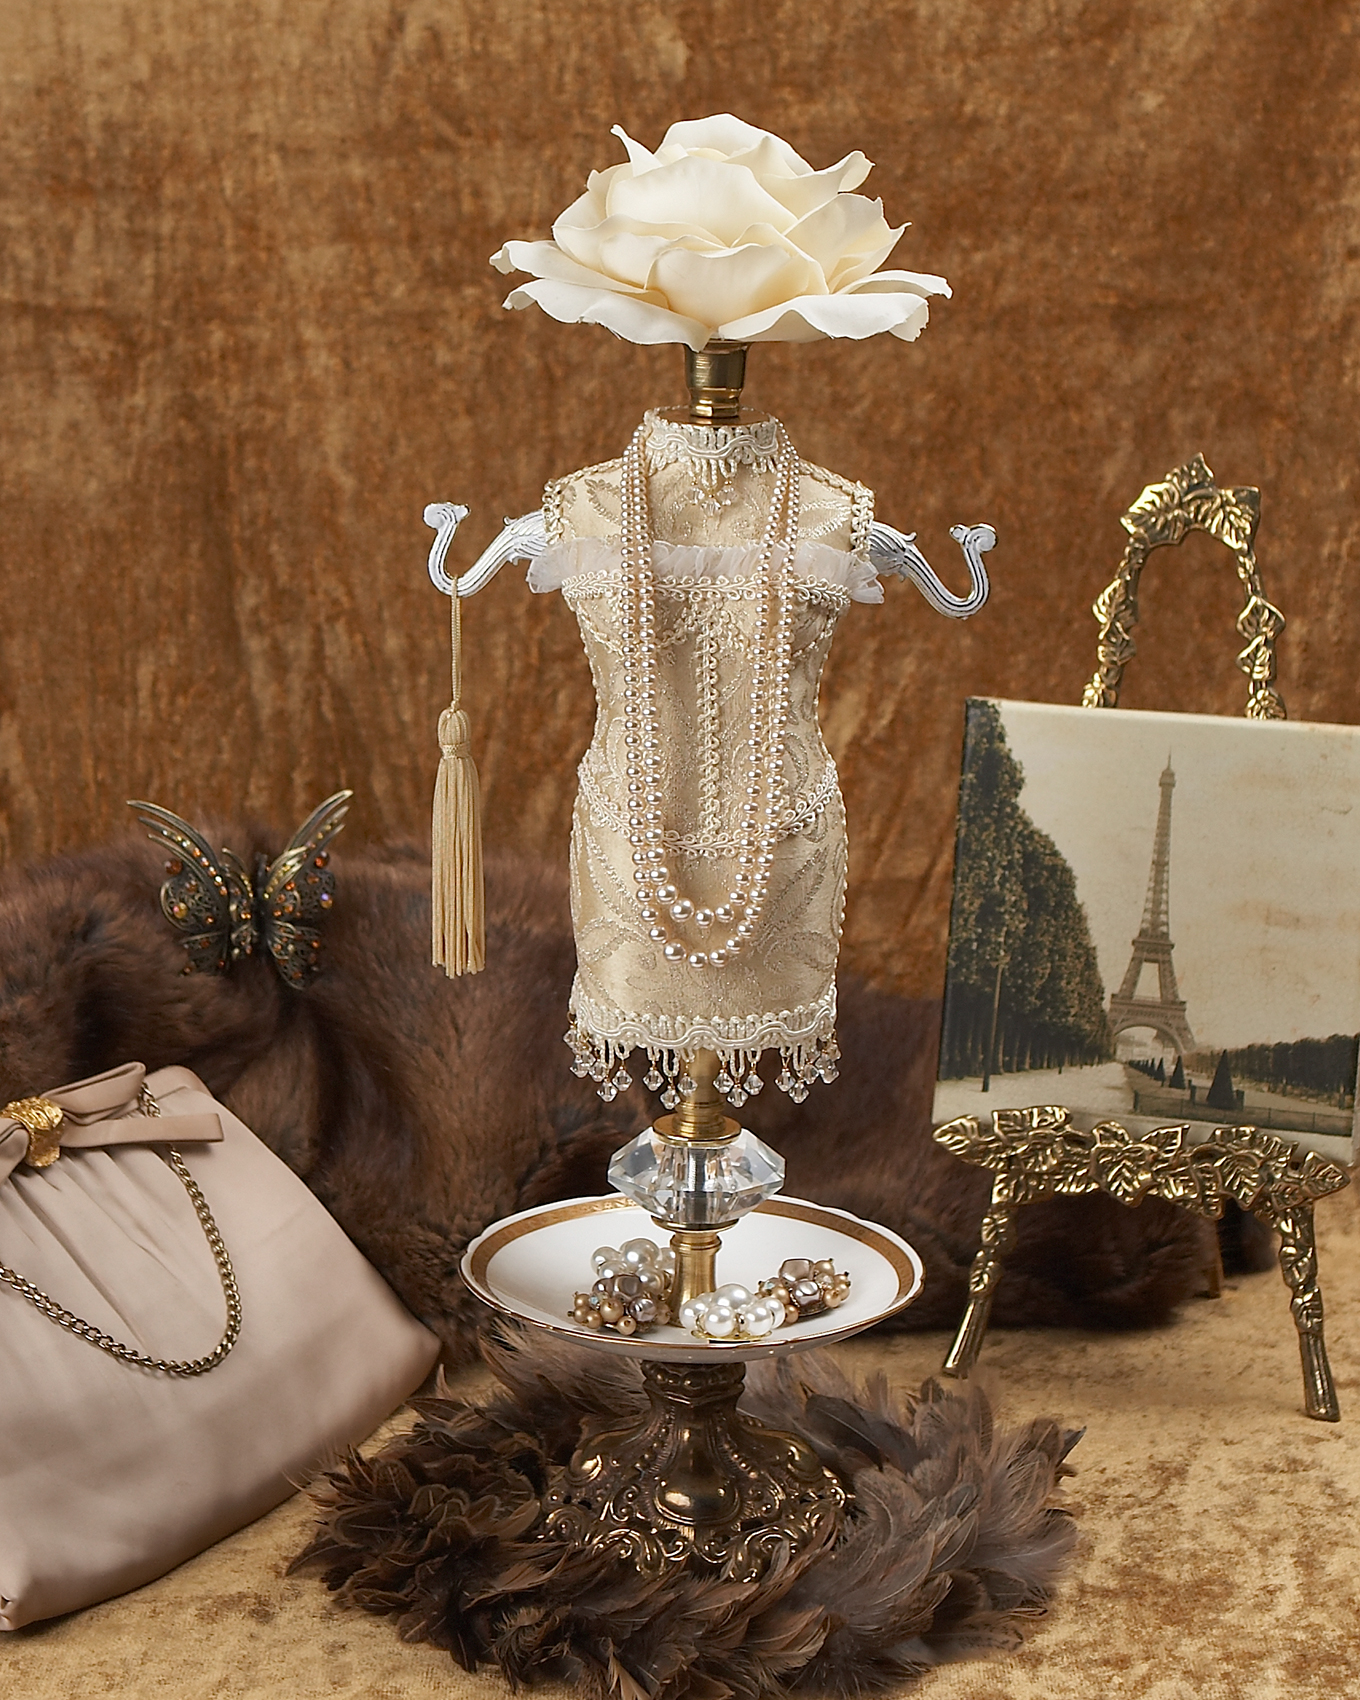 Jewelery holder figurine in cream outfit